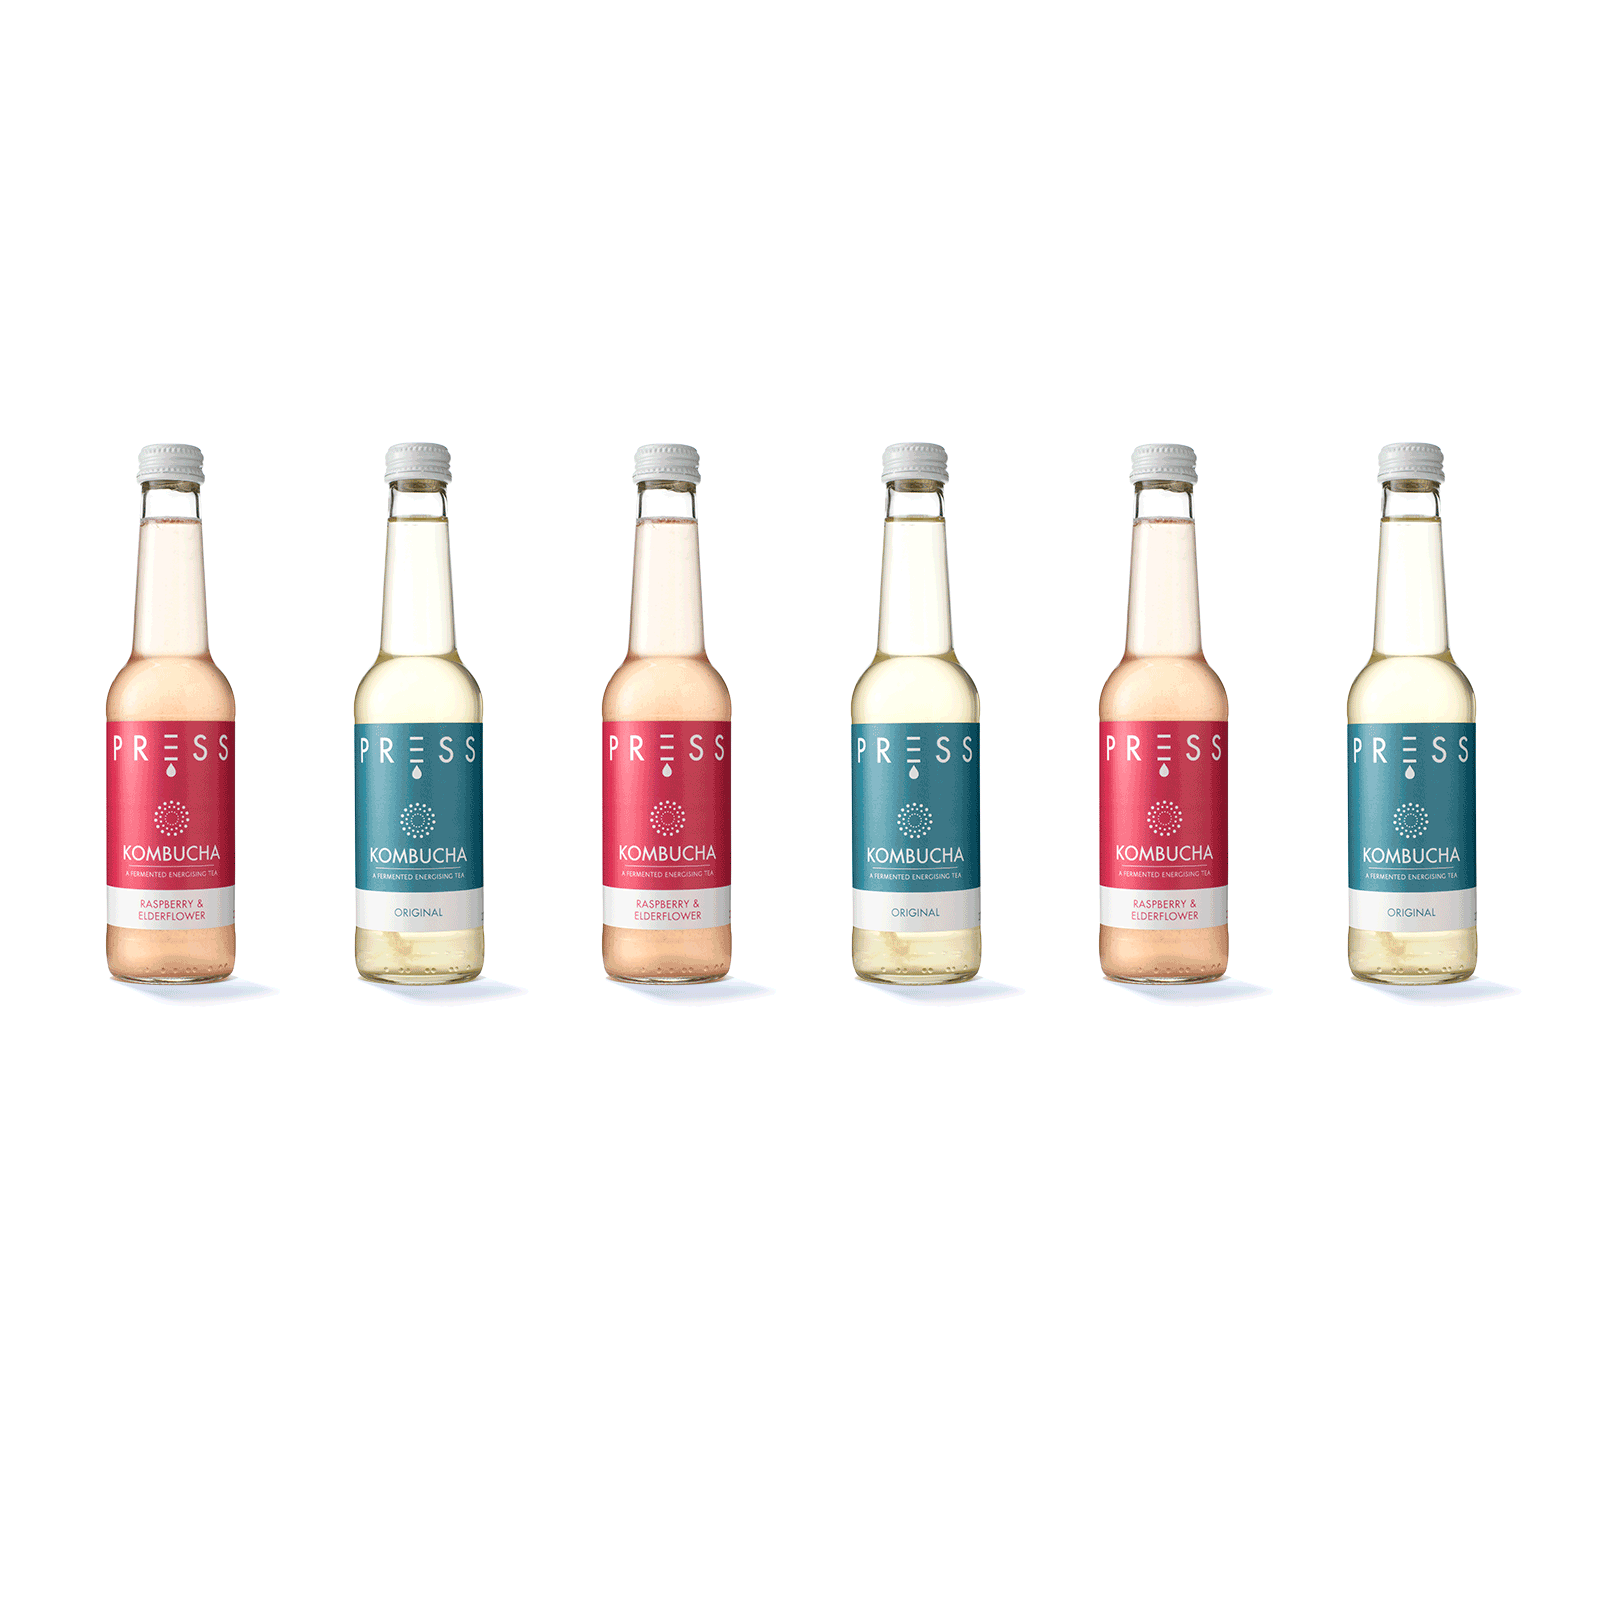 PRESS London Buy Kombucha Mixed Pack